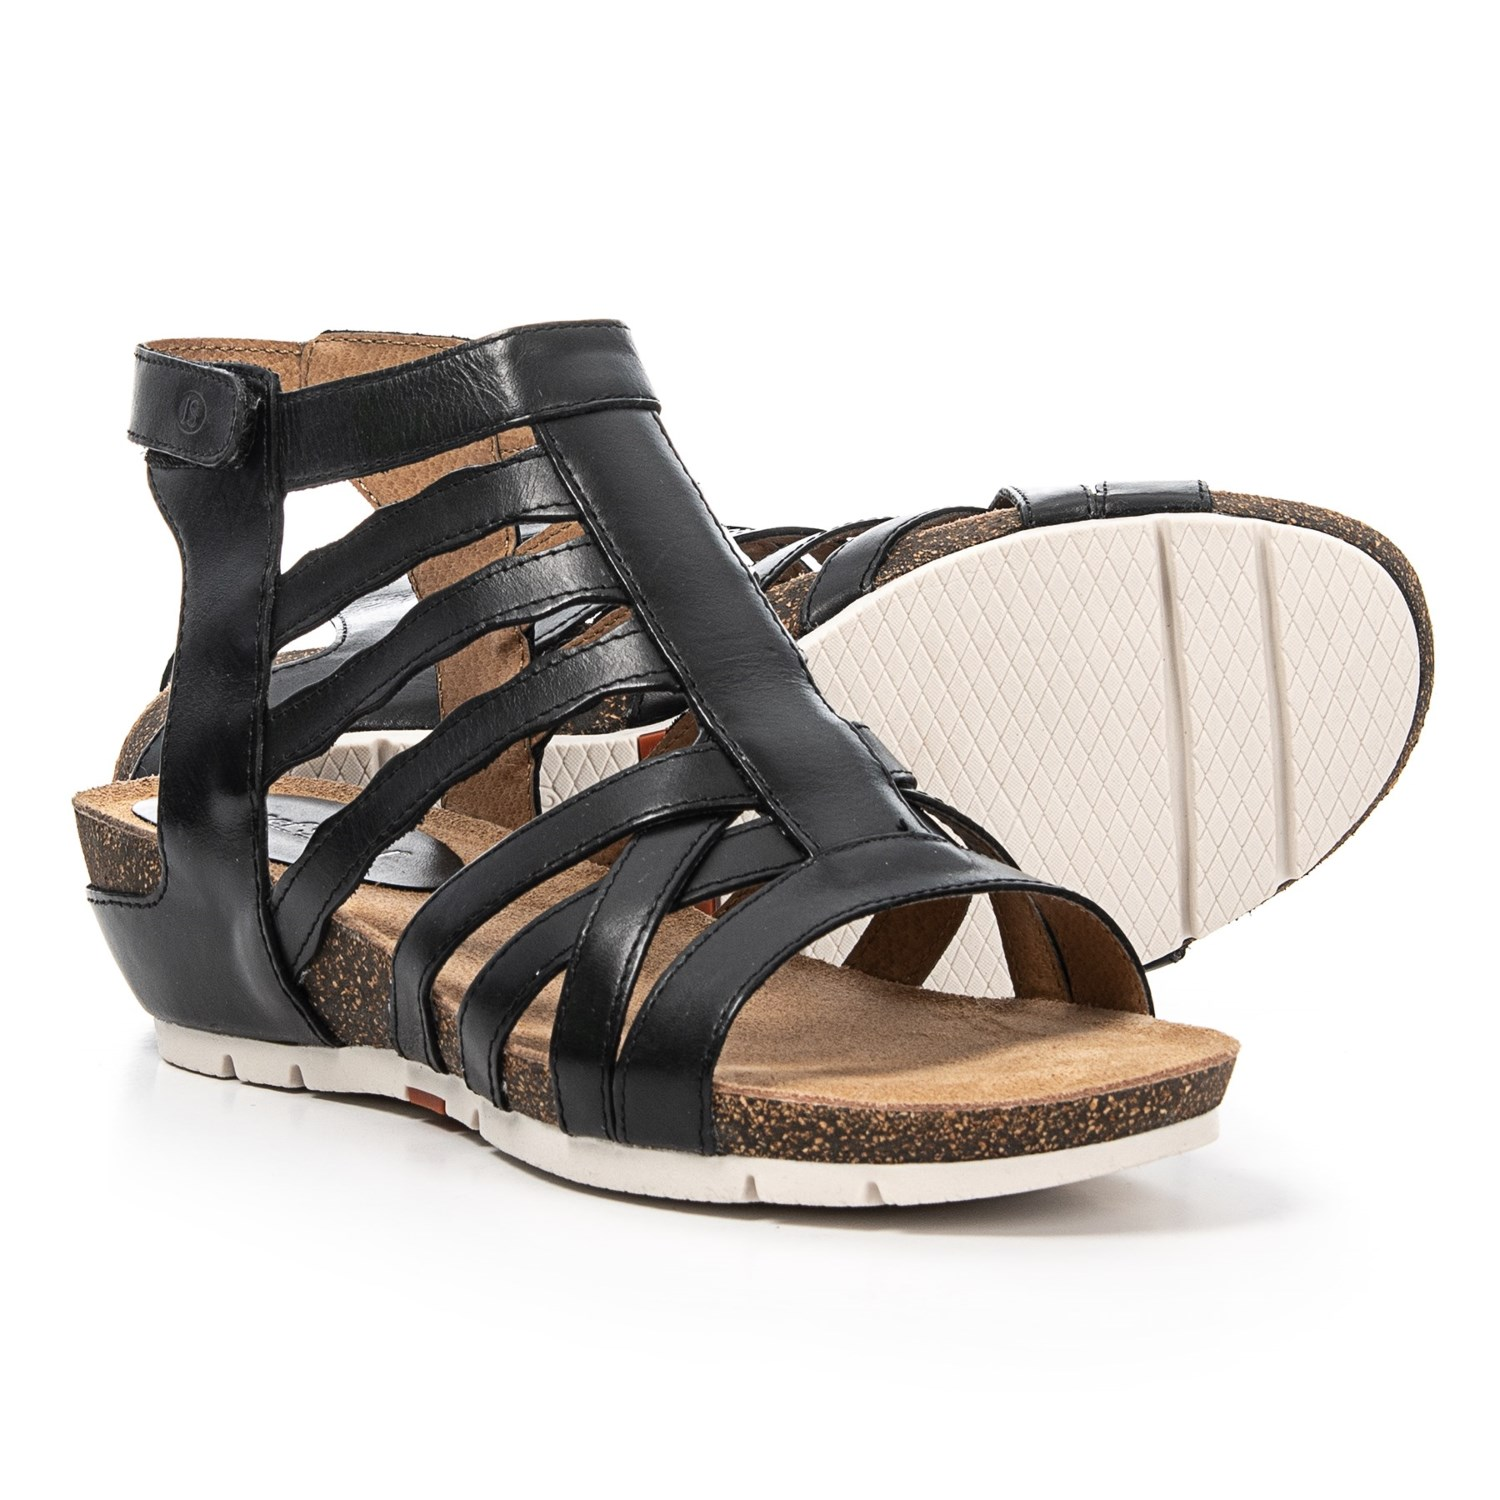 a94675405c7 Josef Seibel Hailey 17 Gladiator Sandals - Leather (For Women) in Black Como